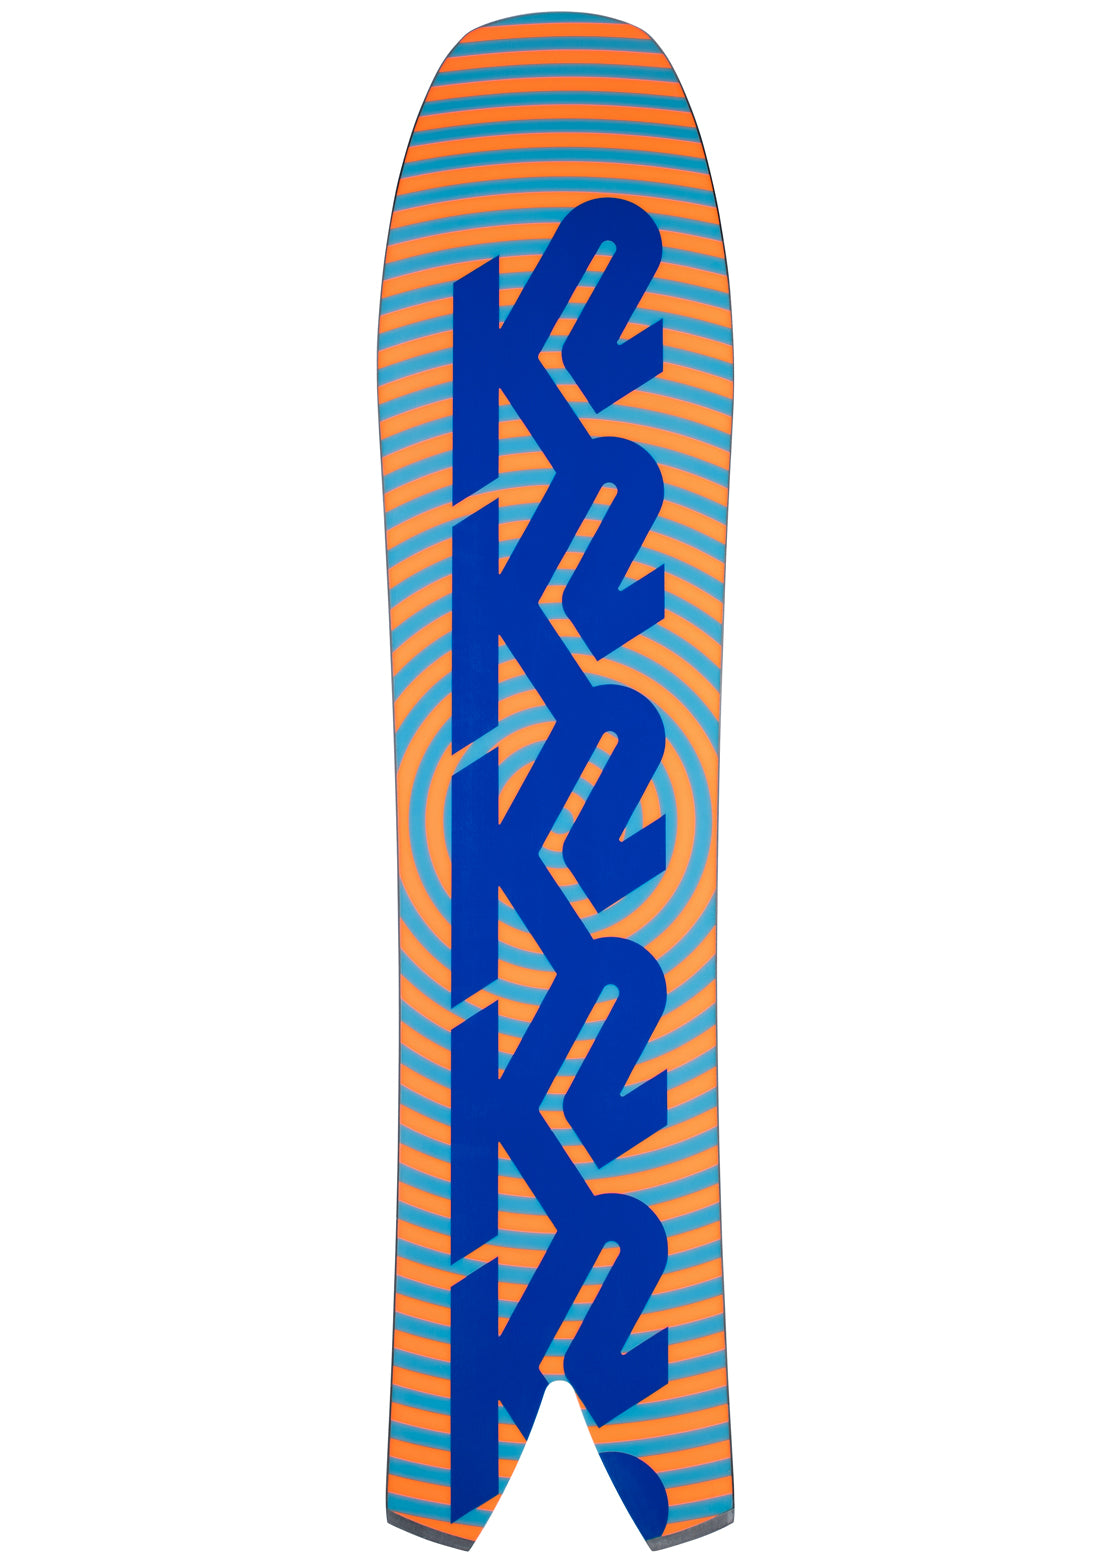 K2 Men's The Cool Bean Snowboard - 144 cm Multi